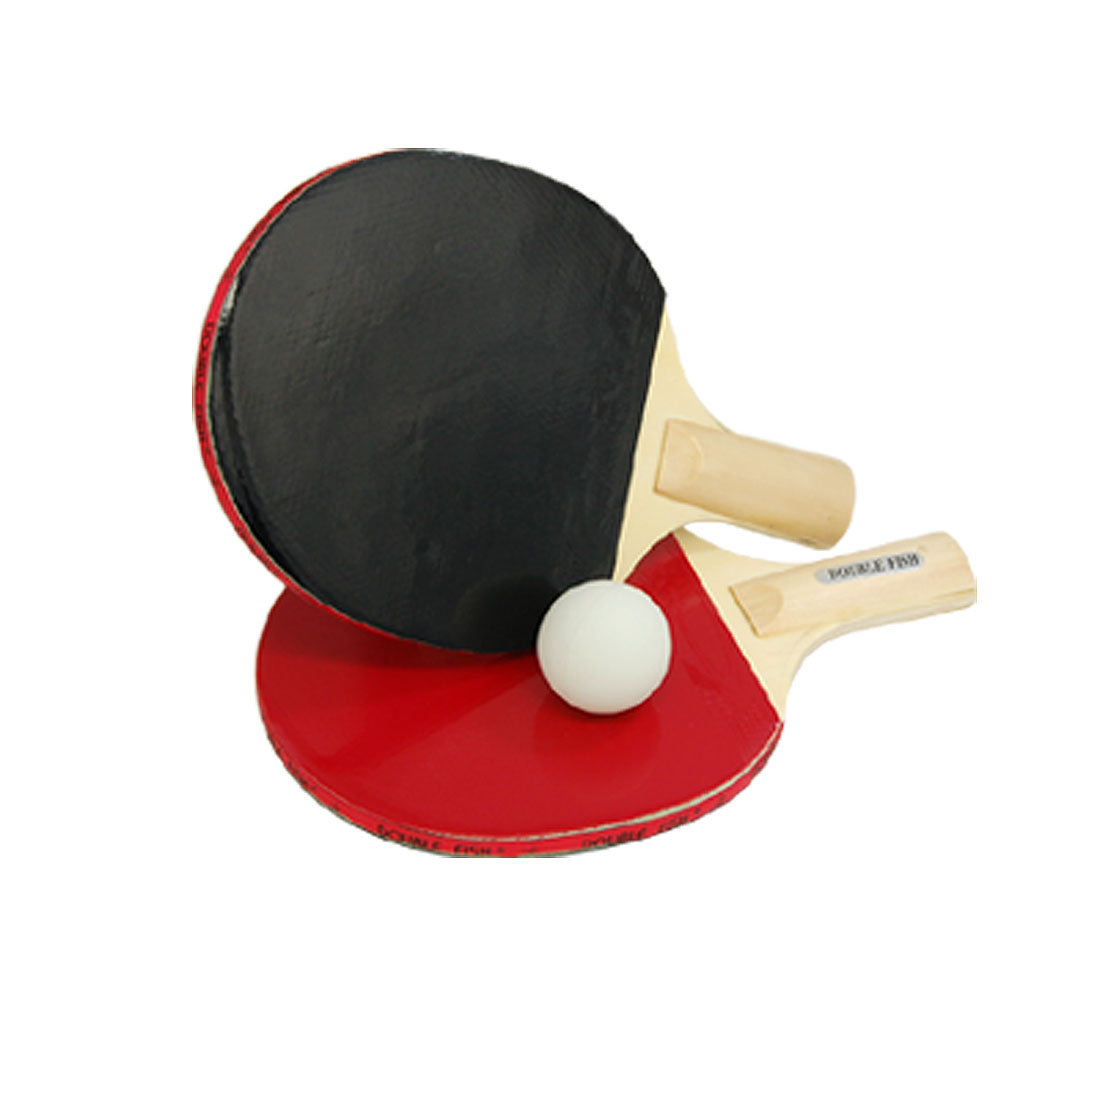 Recreational Penhold Ping Pong Paddles Table Tennis Rackets Balls Set